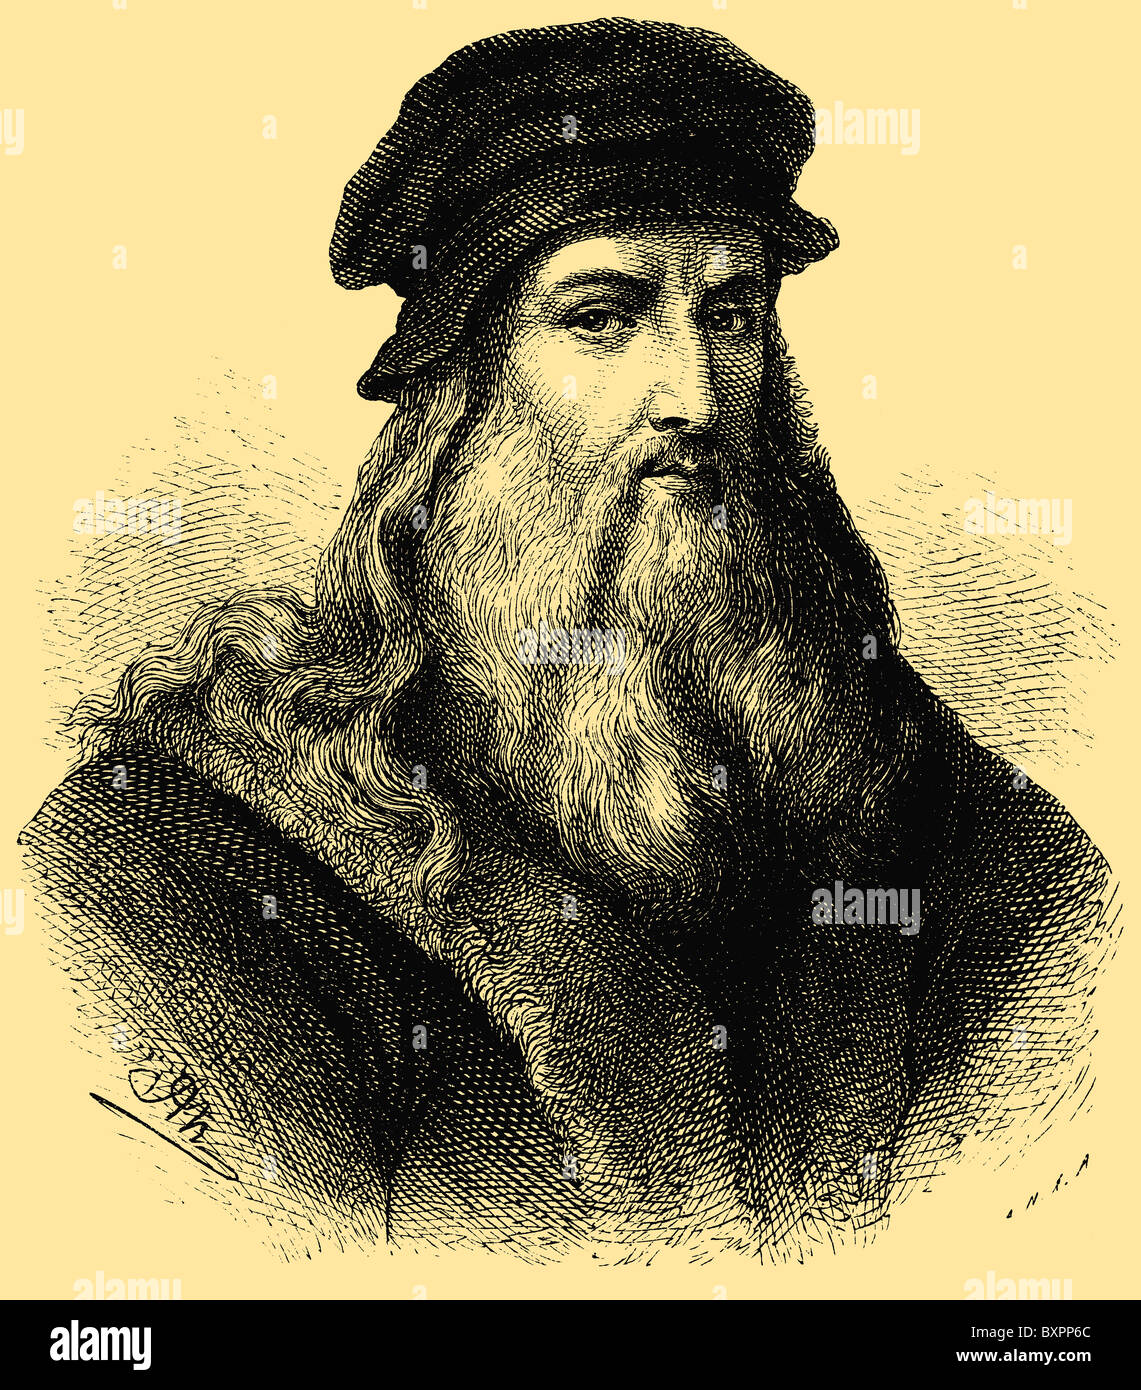 a biography of leonardo da vinci an italian painter sculptor architect engineer and scientist Leonardo da vinci was a florentine artist, whose creative skills extended over the diverse domains of being known as a painter, sculptor, architect, engineer and scientist he was a man with a unique amalgamation of aesthetic and scientific instincts.